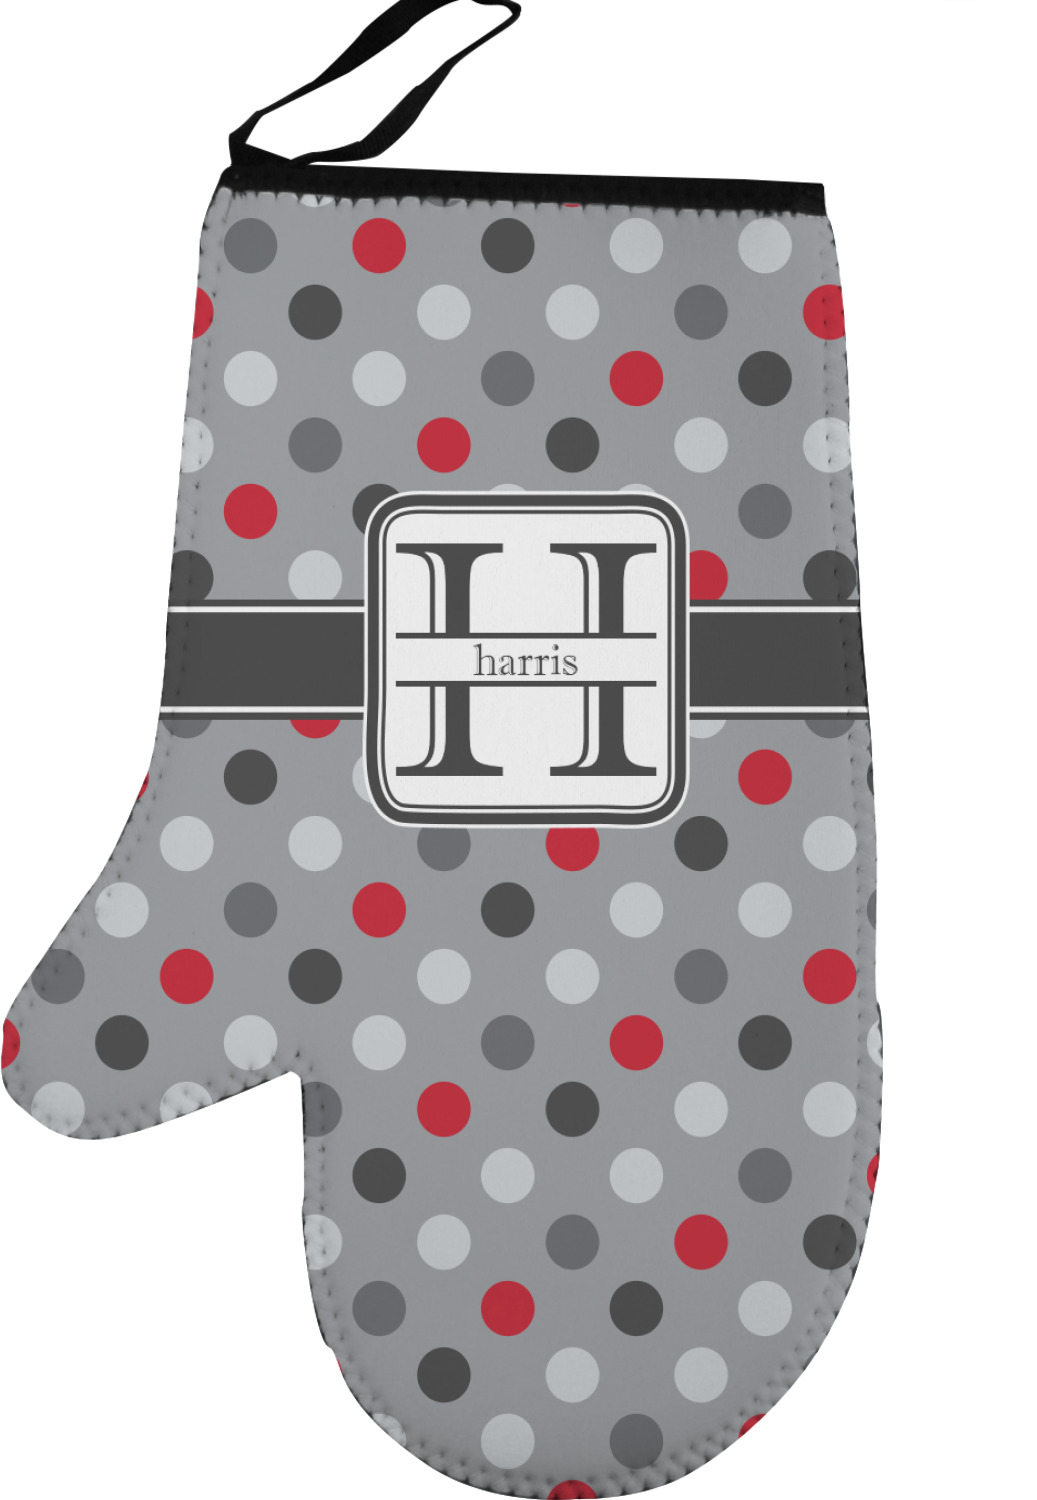 Red Gray Polka Dots Left Oven Mitt Personalized